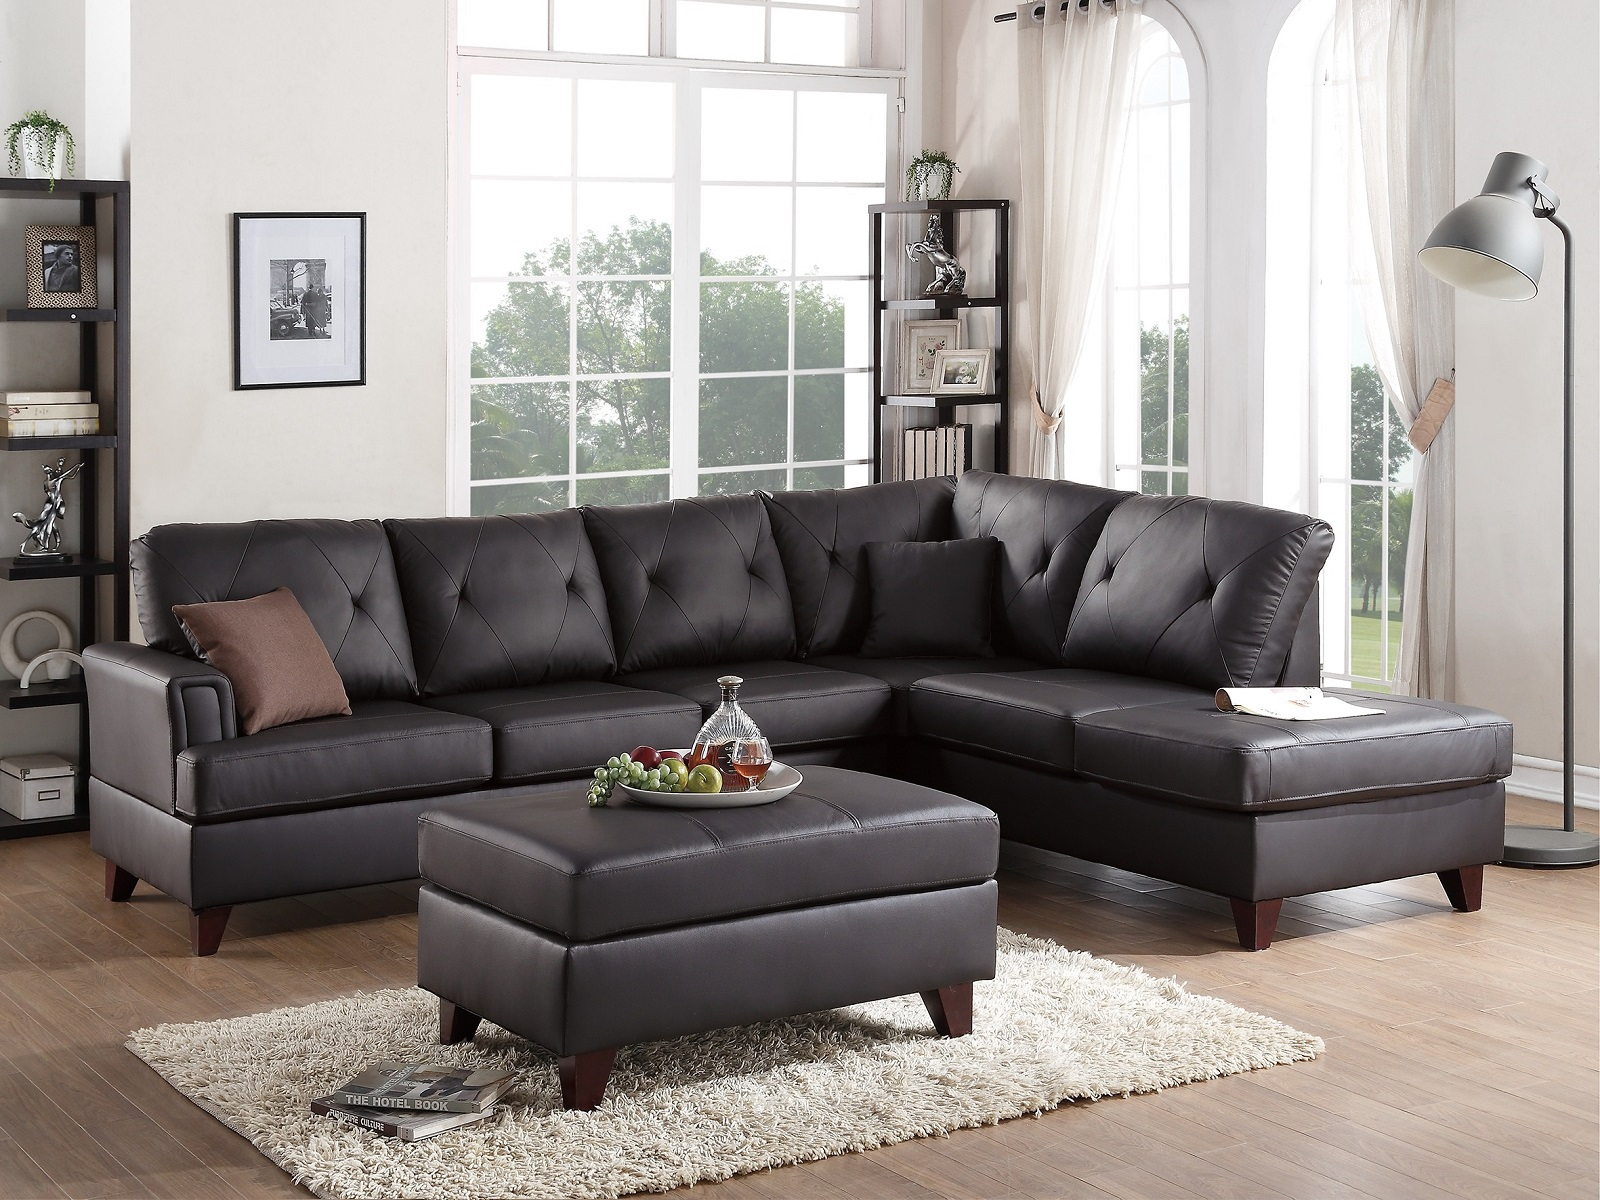 New Reversible Sectional Sofa Set in Brown Color Genuine Leather Match  Diamond Tufted Couch #F6882